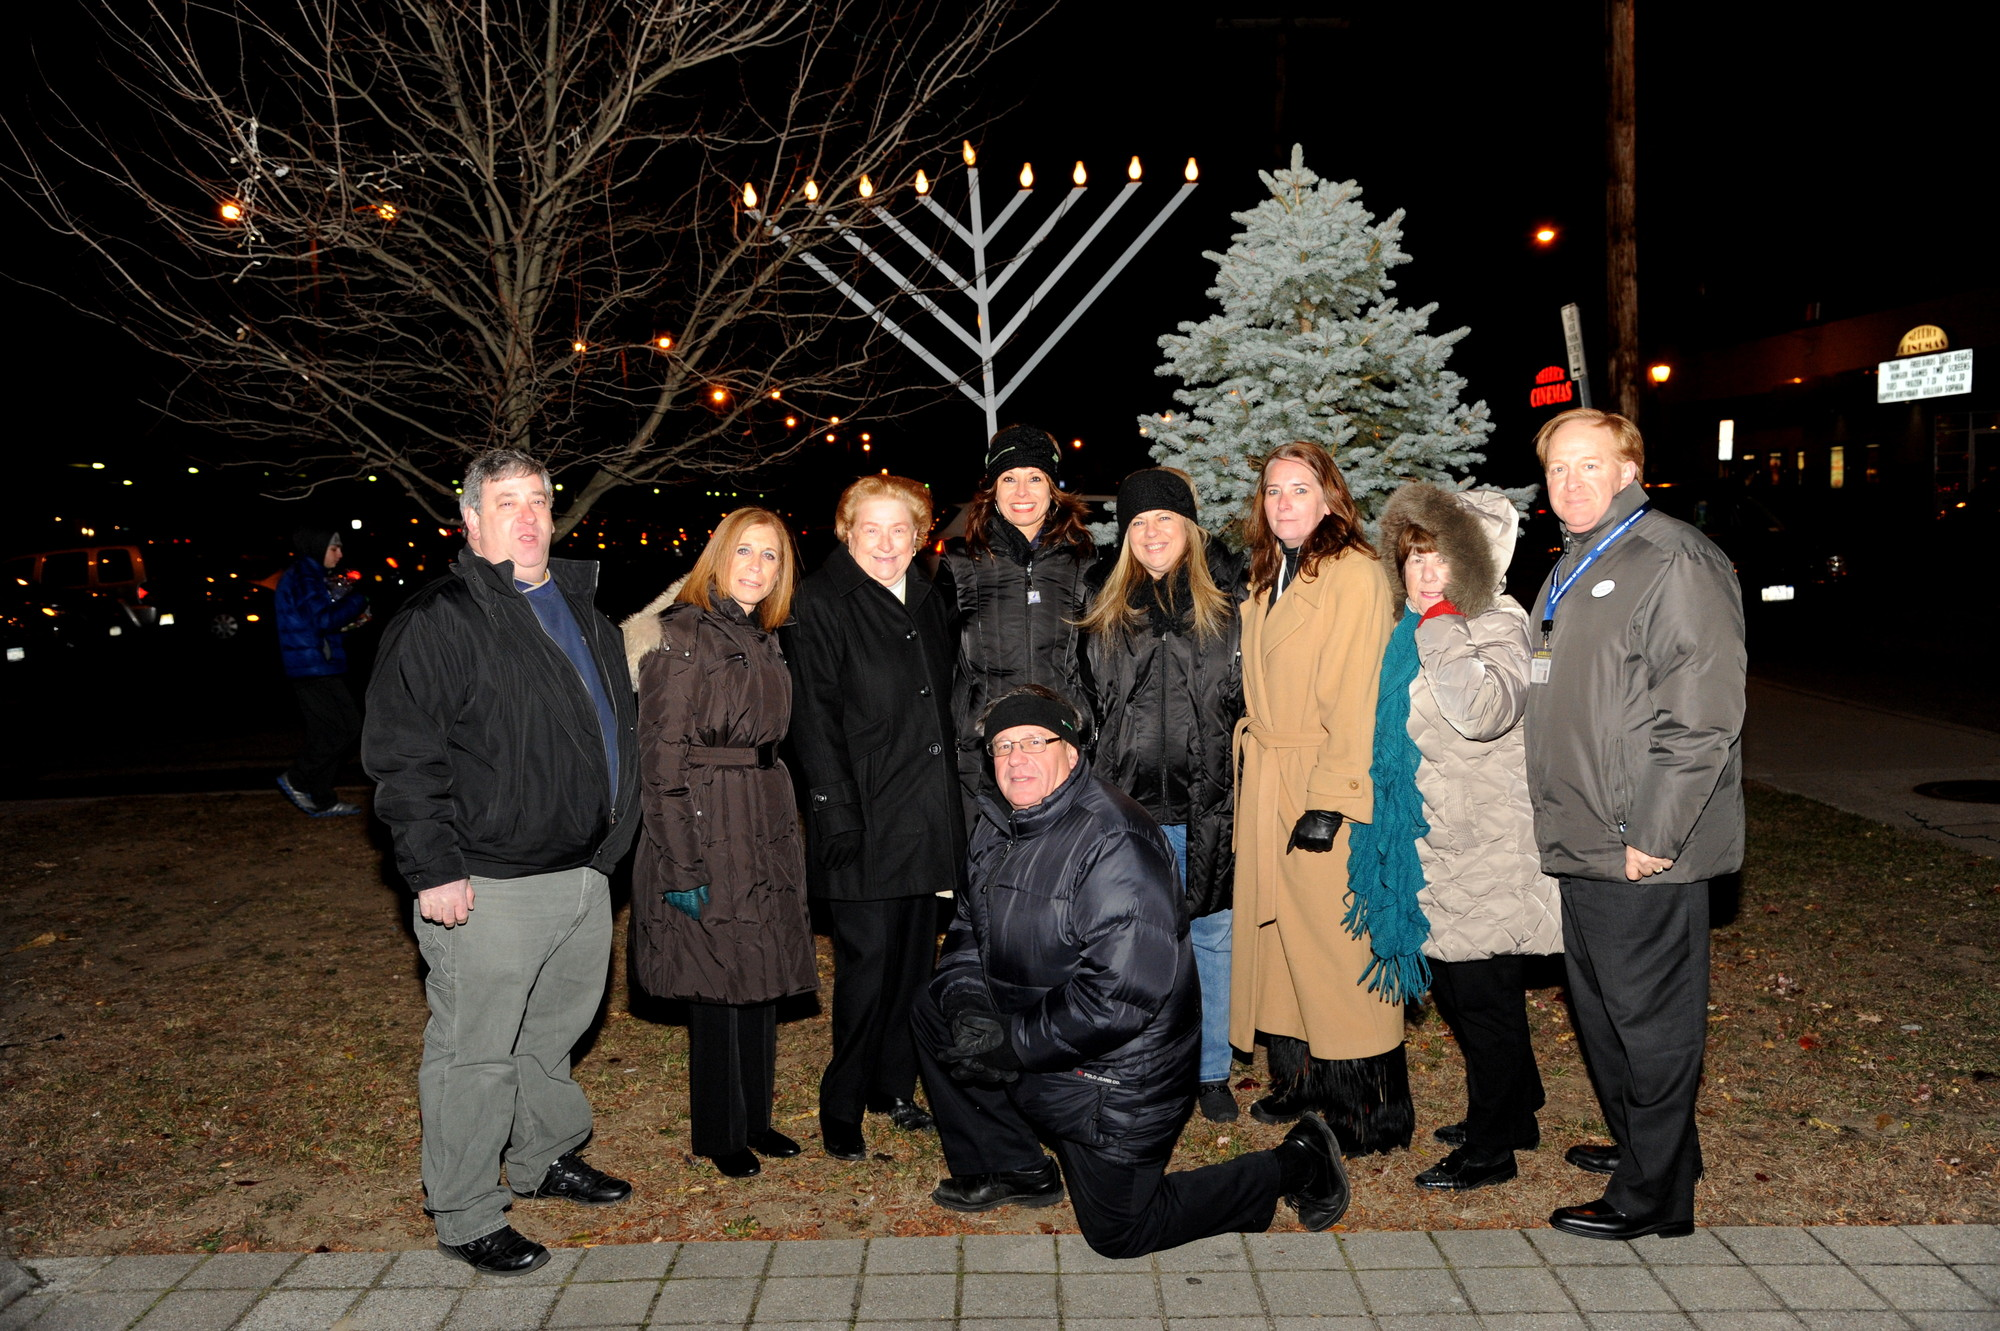 Merrick Chamber of Commerce directors and officers Ira Reiter, Louise Pitlake, Marian Fraker, Randy Shotland, Margaret Biegelman, Lisa Deturris, Margaret Muller, Elaine Spiro and Seth Pitlake braved the cold as they unveiled the chamber's giant menorah in downtown Merrick shortly before the start of Hanukkah.